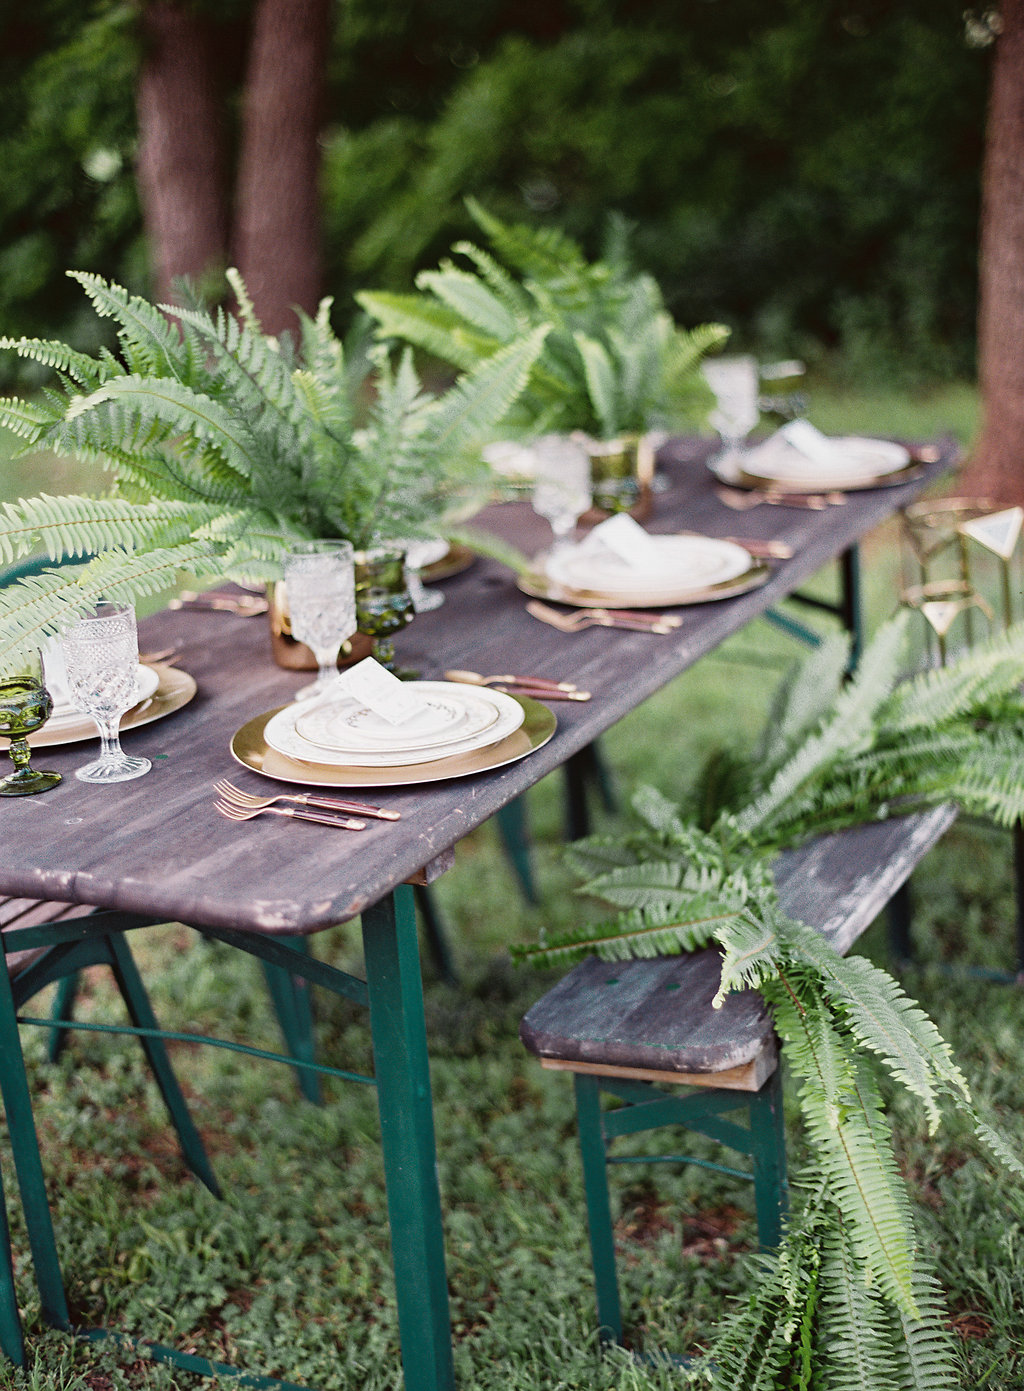 With rentals from Vintage Tabletop Rental and meticulously thought out styling by Danielle Guthrie at www.danielleelizabethinc.com, the whole shoot came alive!